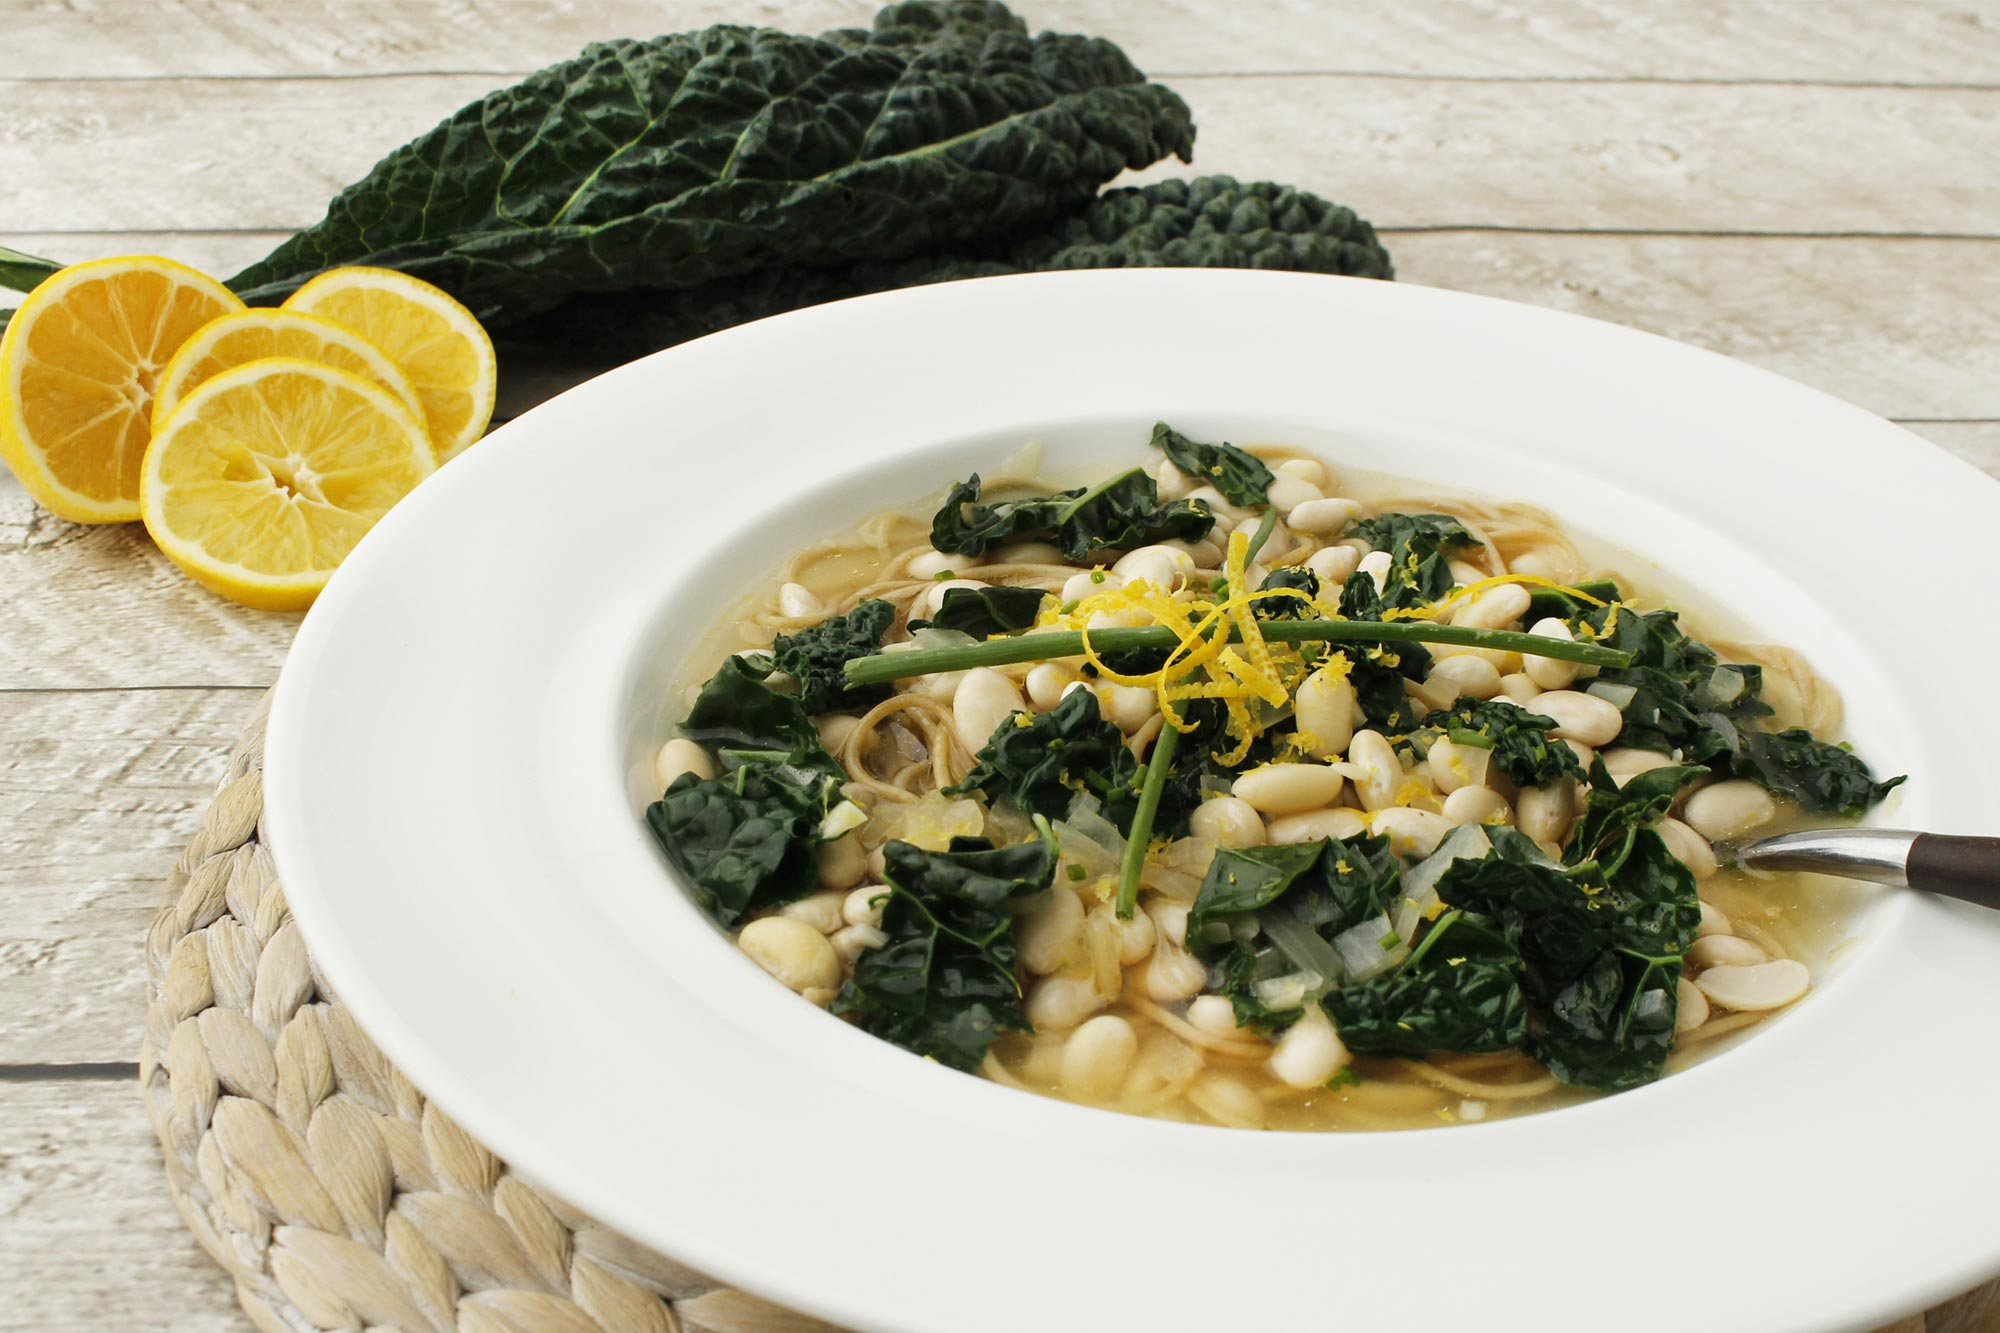 Lemon Soup with Pasta, White Bean and Kale